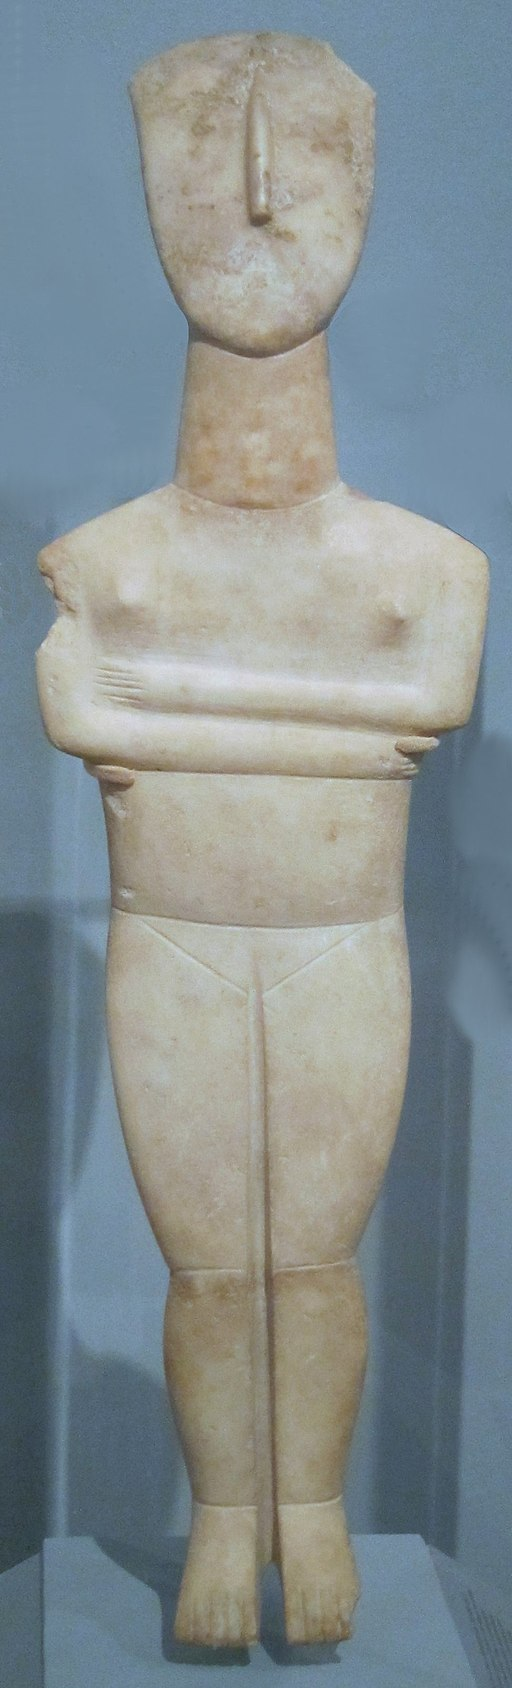 Cycladic, c. 2500-2400 B.C.E., White marble with traces of polychrome